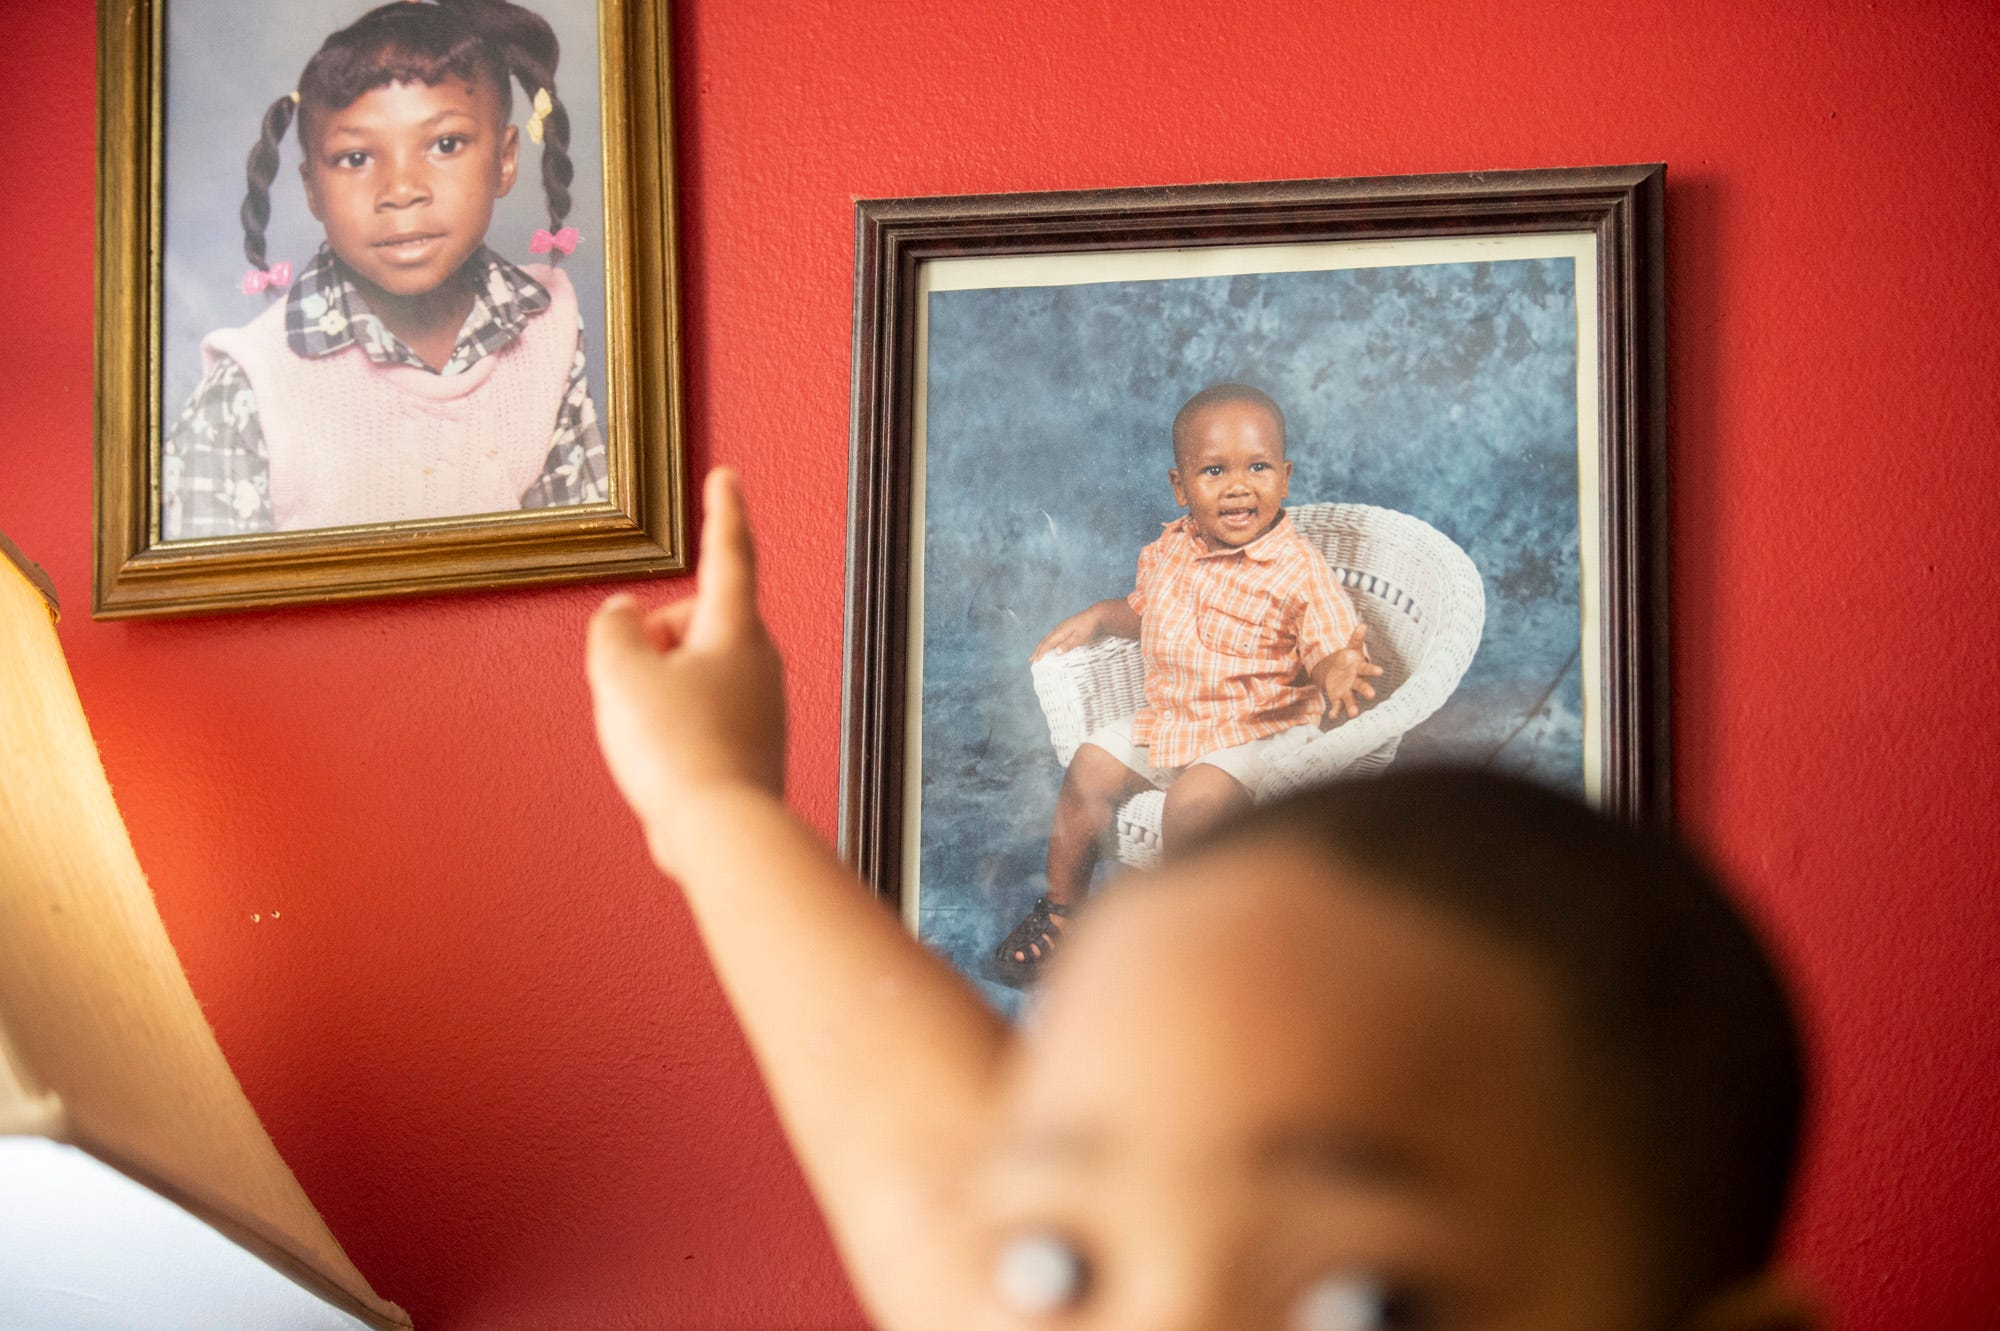 A young picture of Chauncey Blackburn hangs at his family's home in Montgomery, Ala., on Sunday, March 8, 2020. Chauncey Blackburn, 18, was shot and killed Feb. 24, 2018, no one has been charged with his murder.